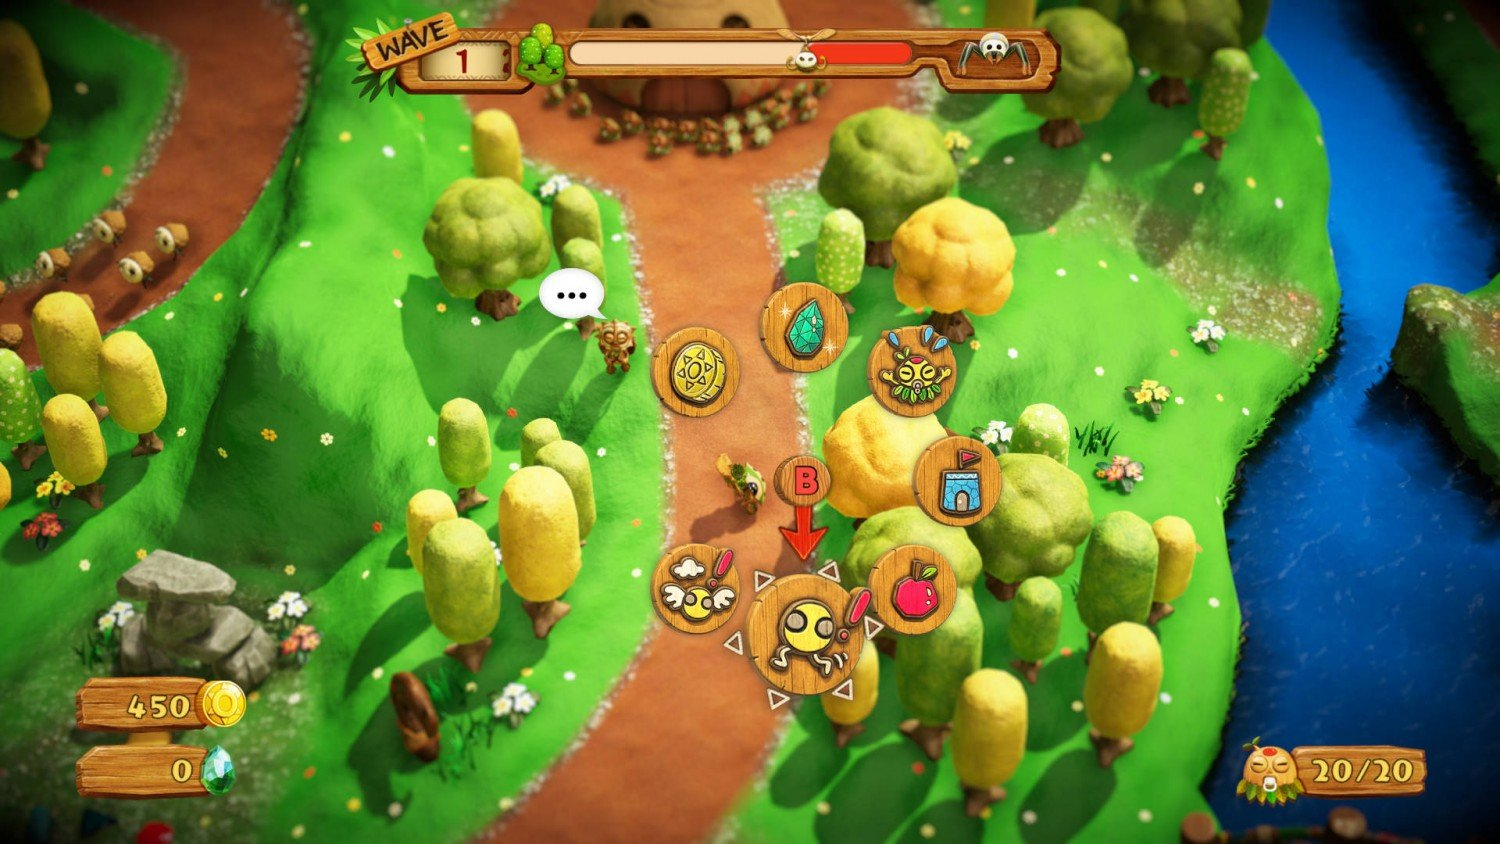 Скриншот 3 к игре PixelJunk Monsters 2 (2018) | Лицензия